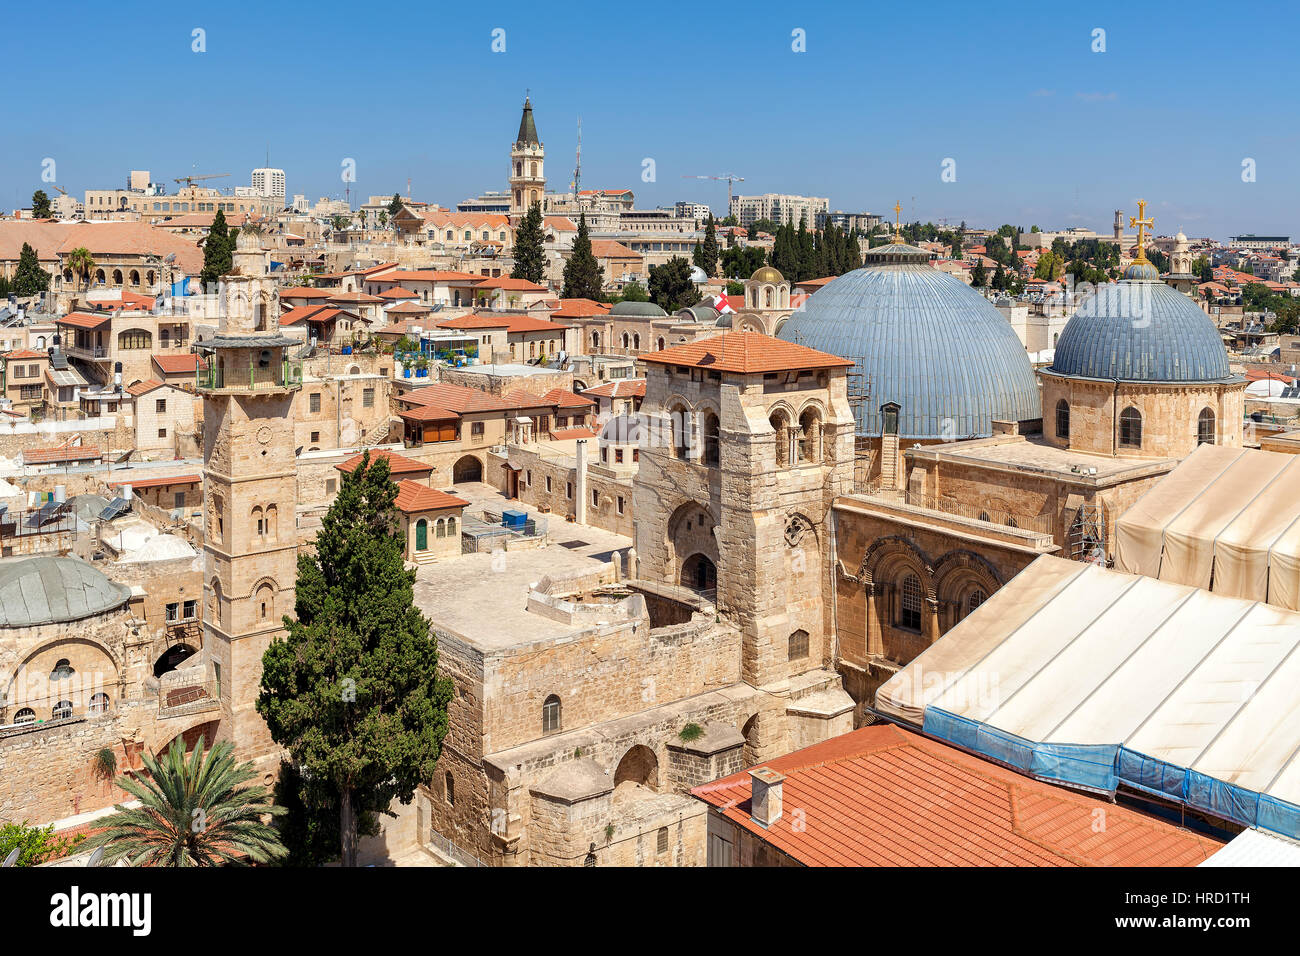 Church of the Holy Sepulchre domes, minarets and rooftops of the Old City of Jerusalem, Israel as seen from above. - Stock Image